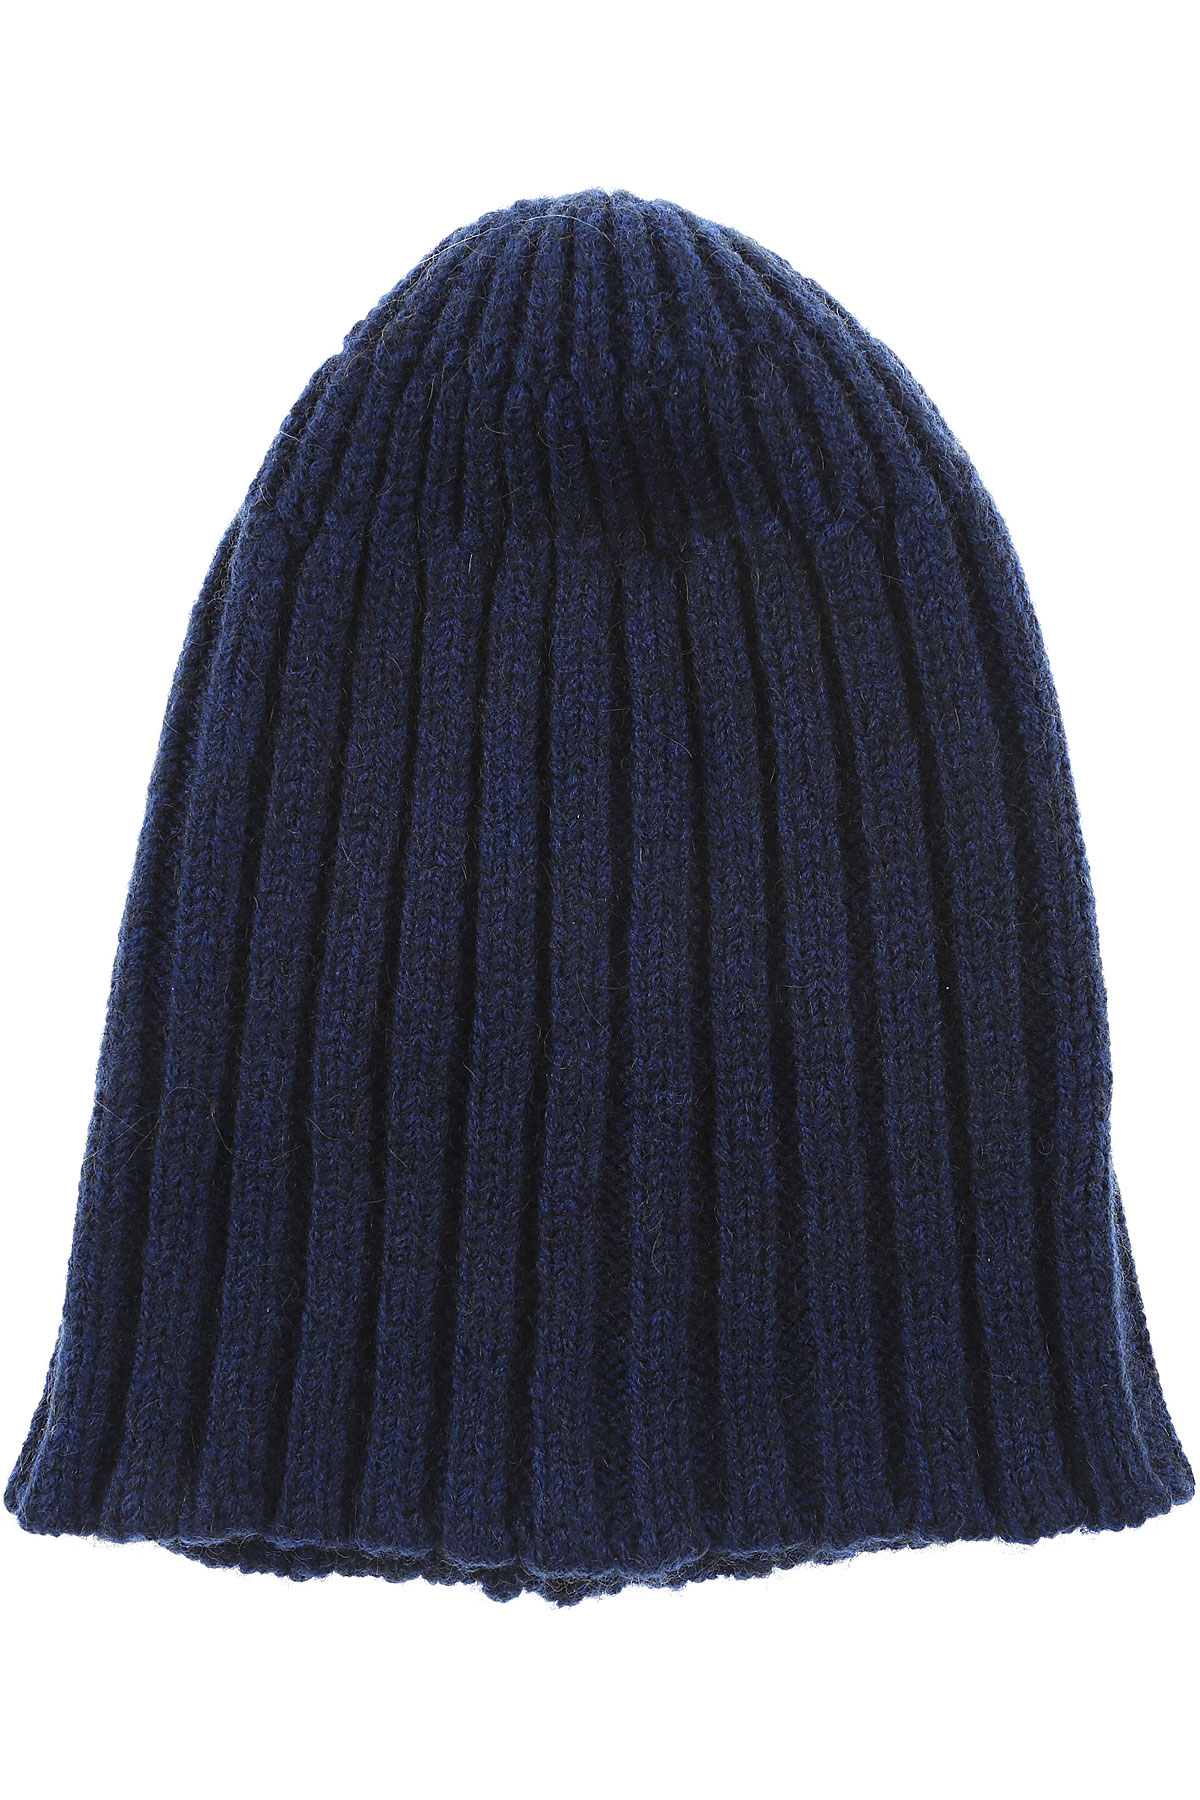 Image of Roberto Collina Hat for Women, Sapphire Blue, Extrafine Merino Wool, 2017